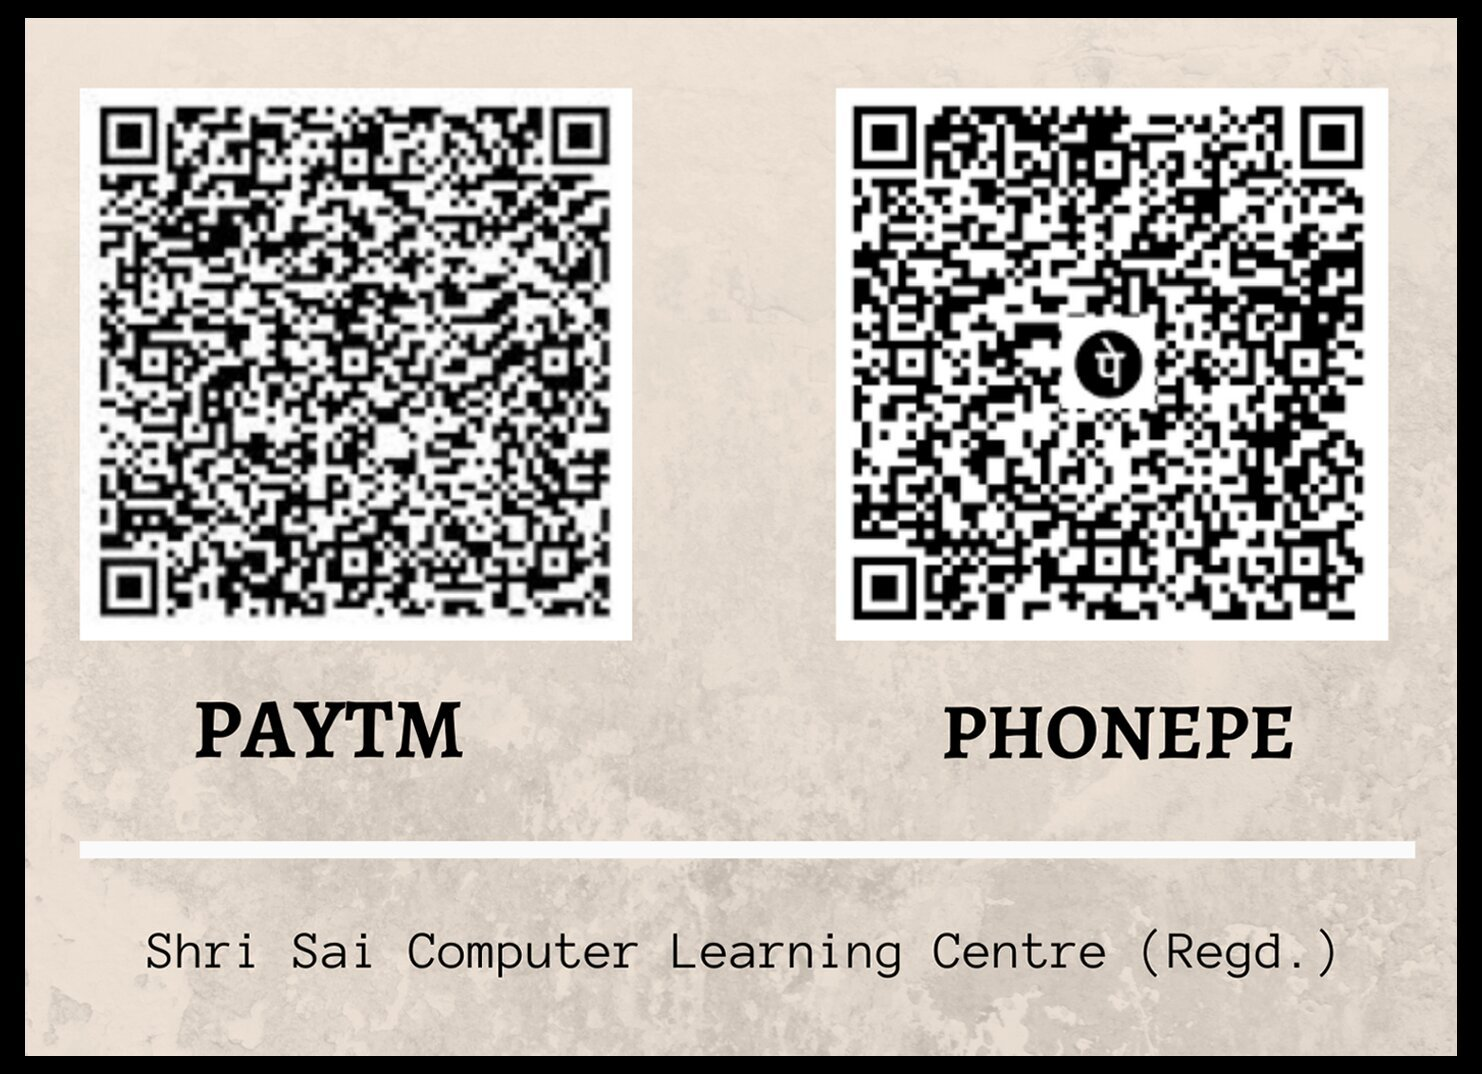 Paytm / PhonePe QR Code of Our Institute